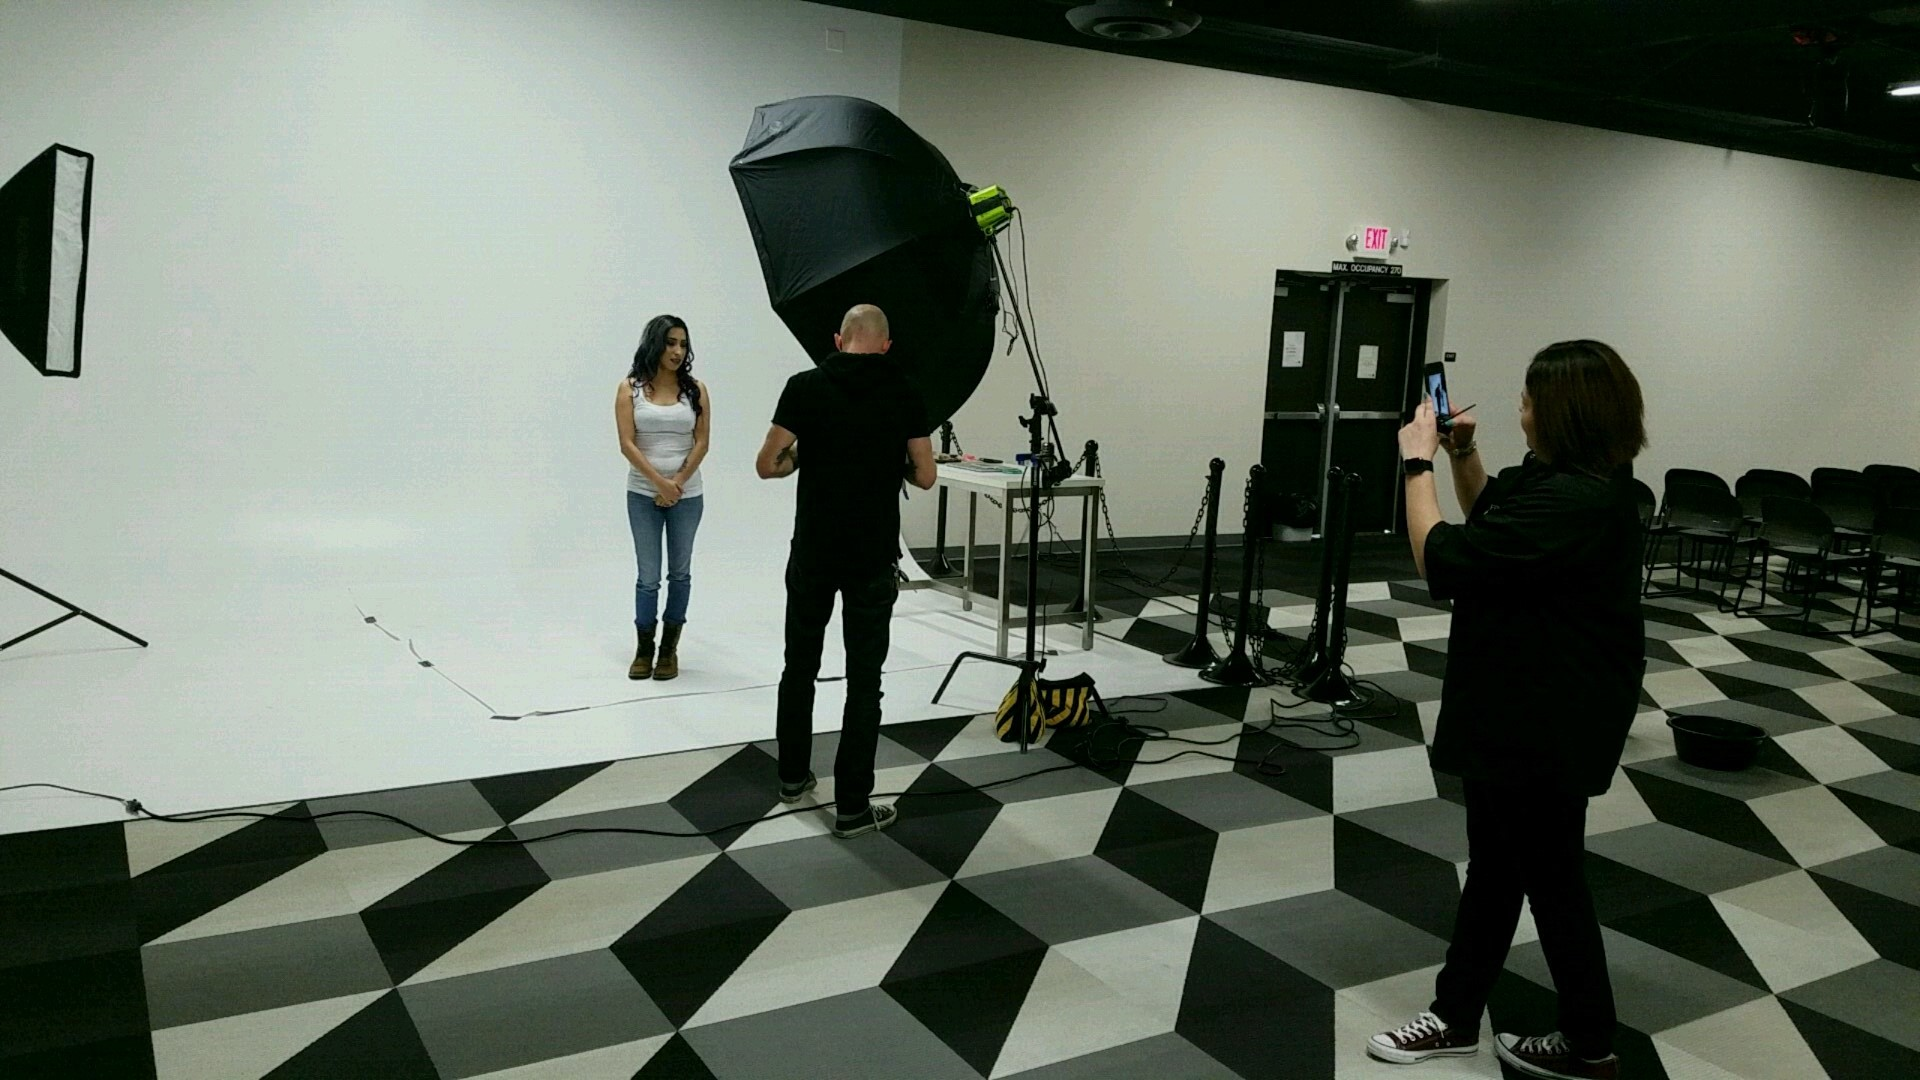 The full model shoot set up with lights and cameras!